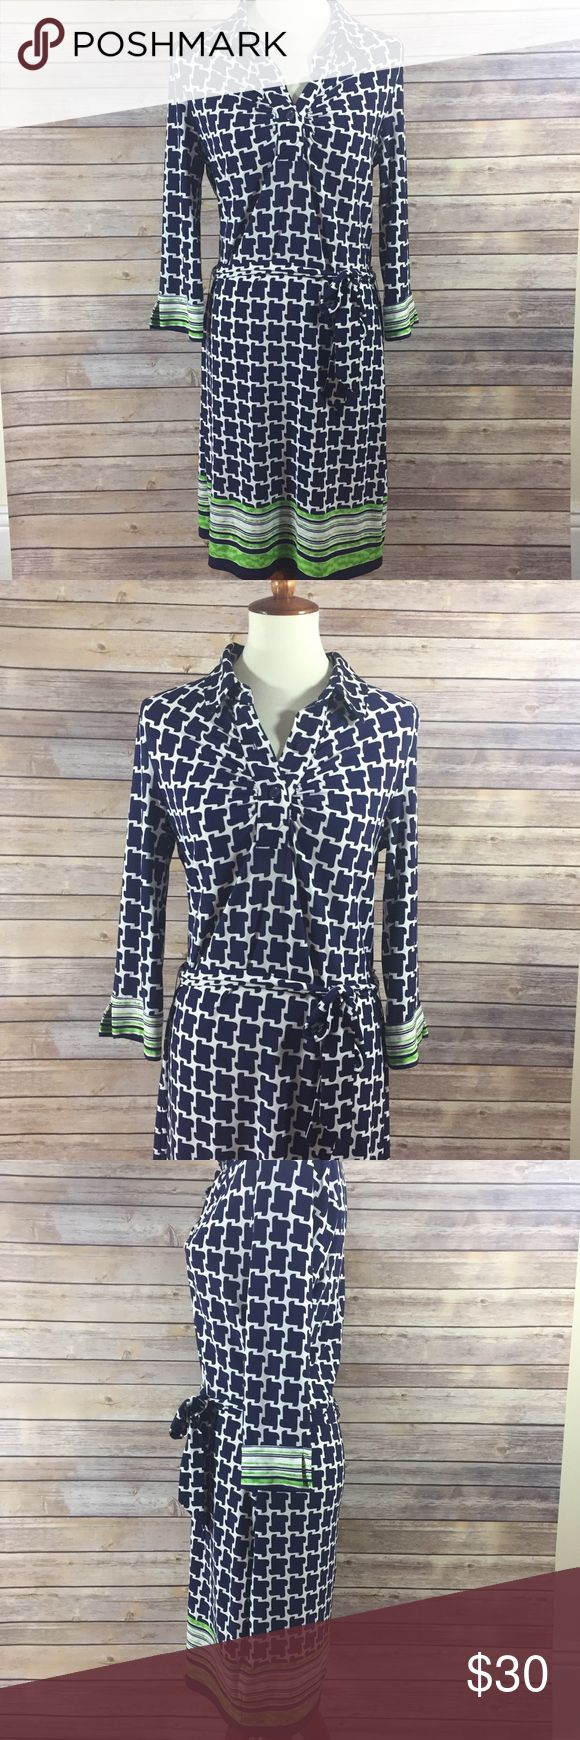 Laundry By Shelli Segal Size 8 Dress Laundry By Shelli Segal Size 8 Dress. In great condition. Form fitting with stretch. Laundry By Shelli Segal Dresses